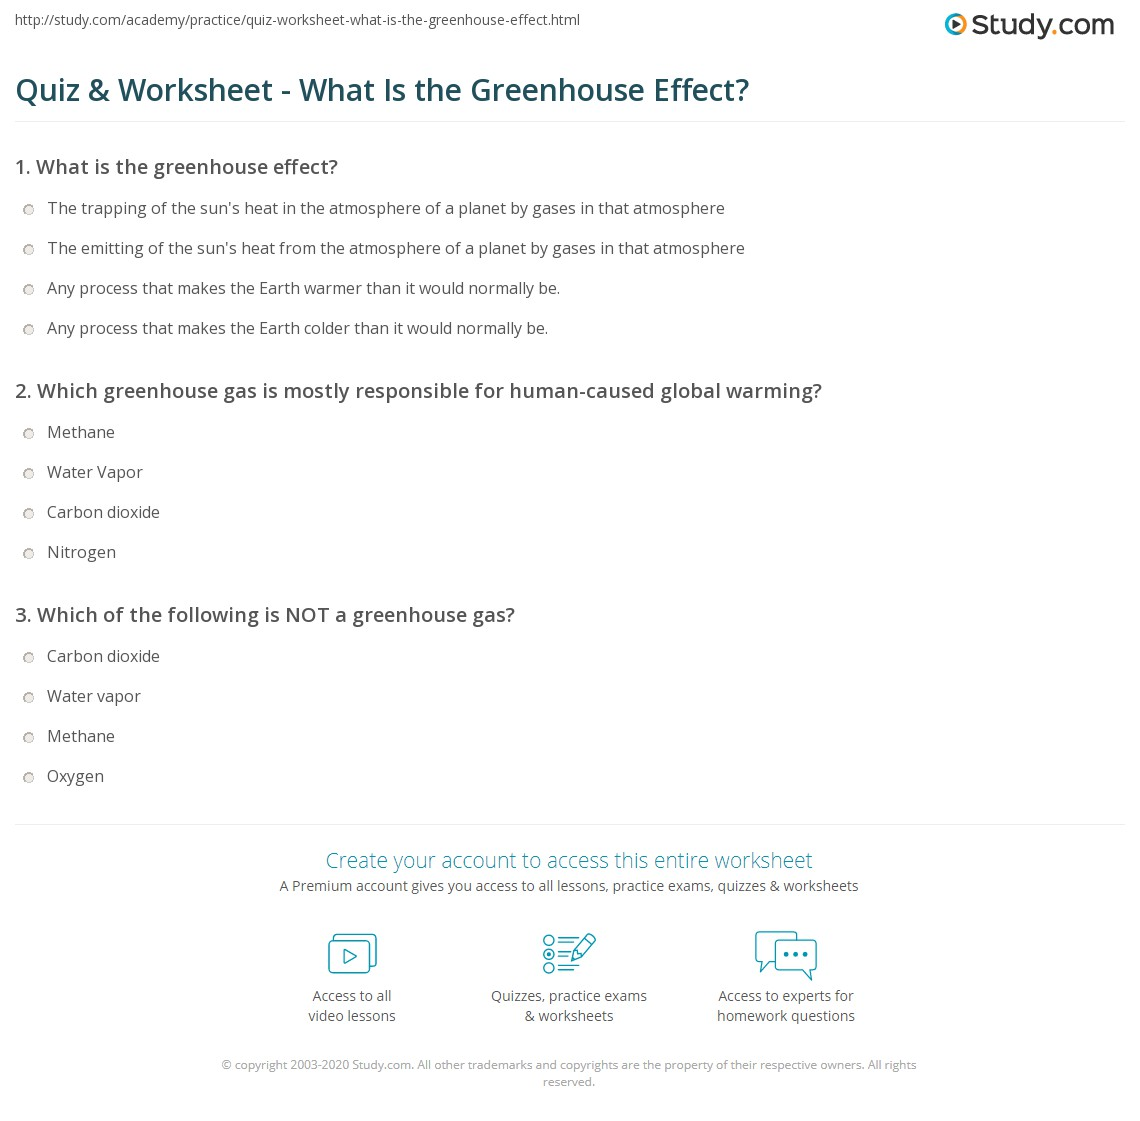 quiz & worksheet - what is the greenhouse effect? | study